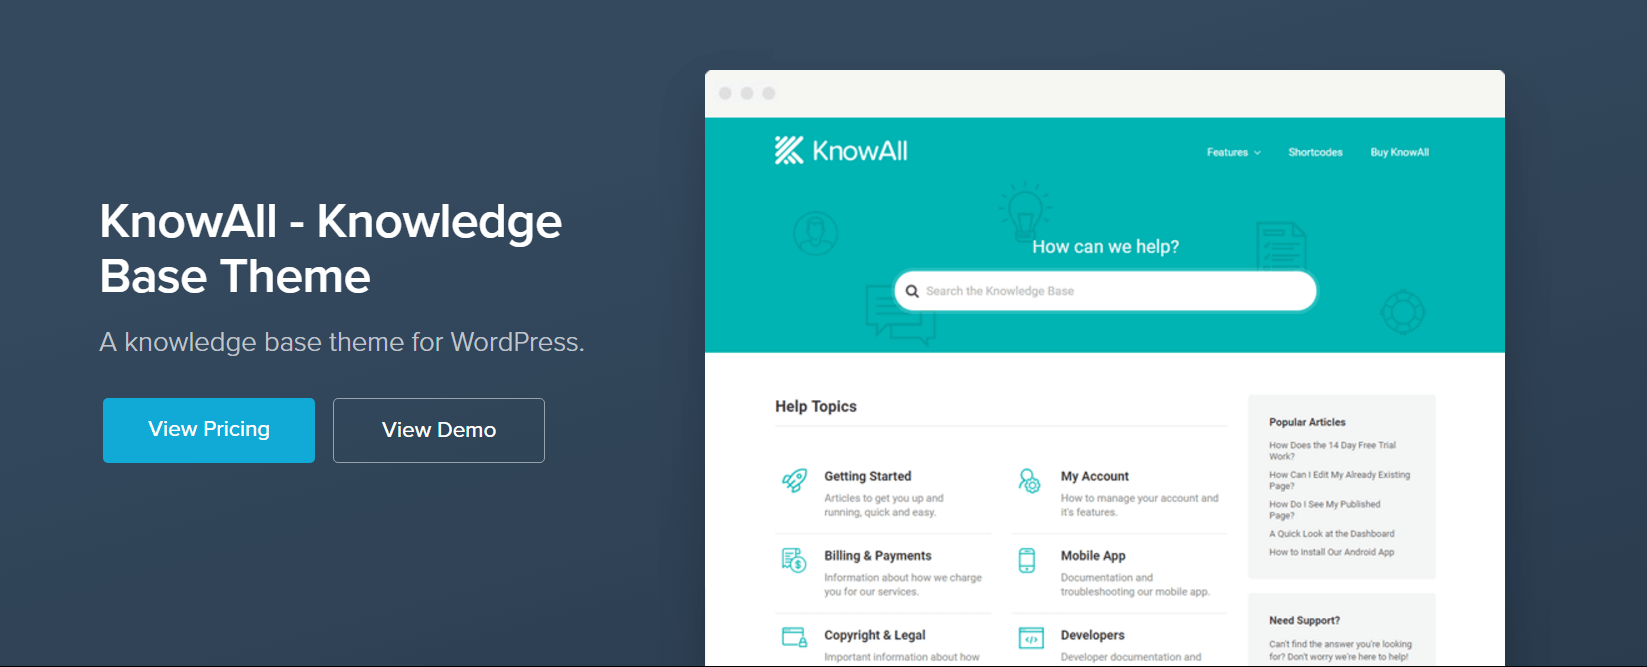 The WordPress KnowAll theme